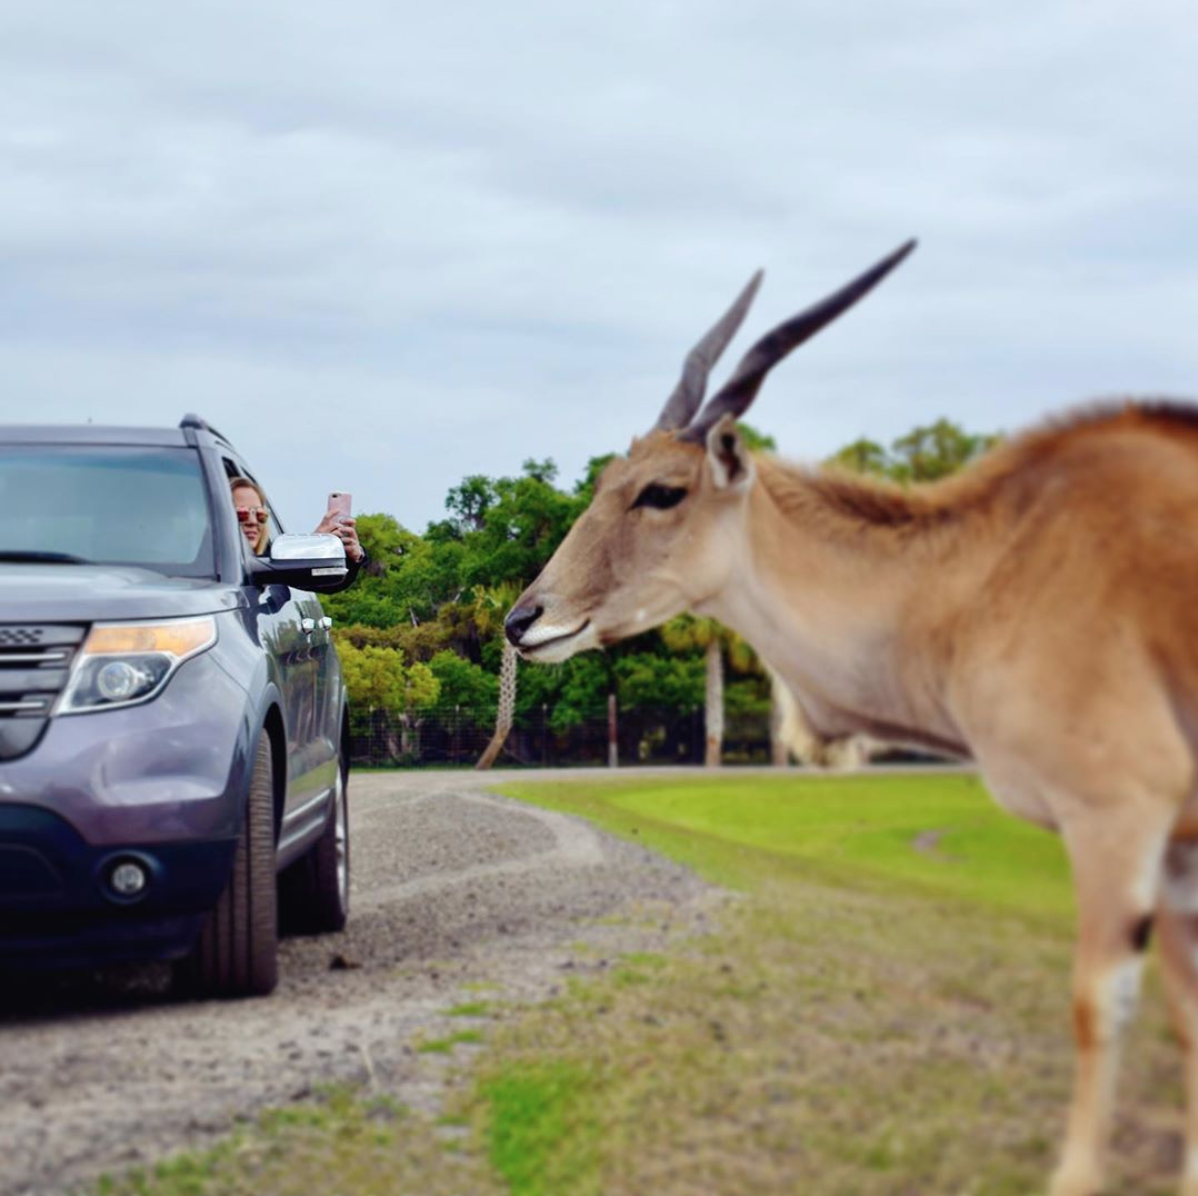 Wild Florida Drive-Thru Safari: image of woman in her car taking a picture of a gazelle on the safari tour